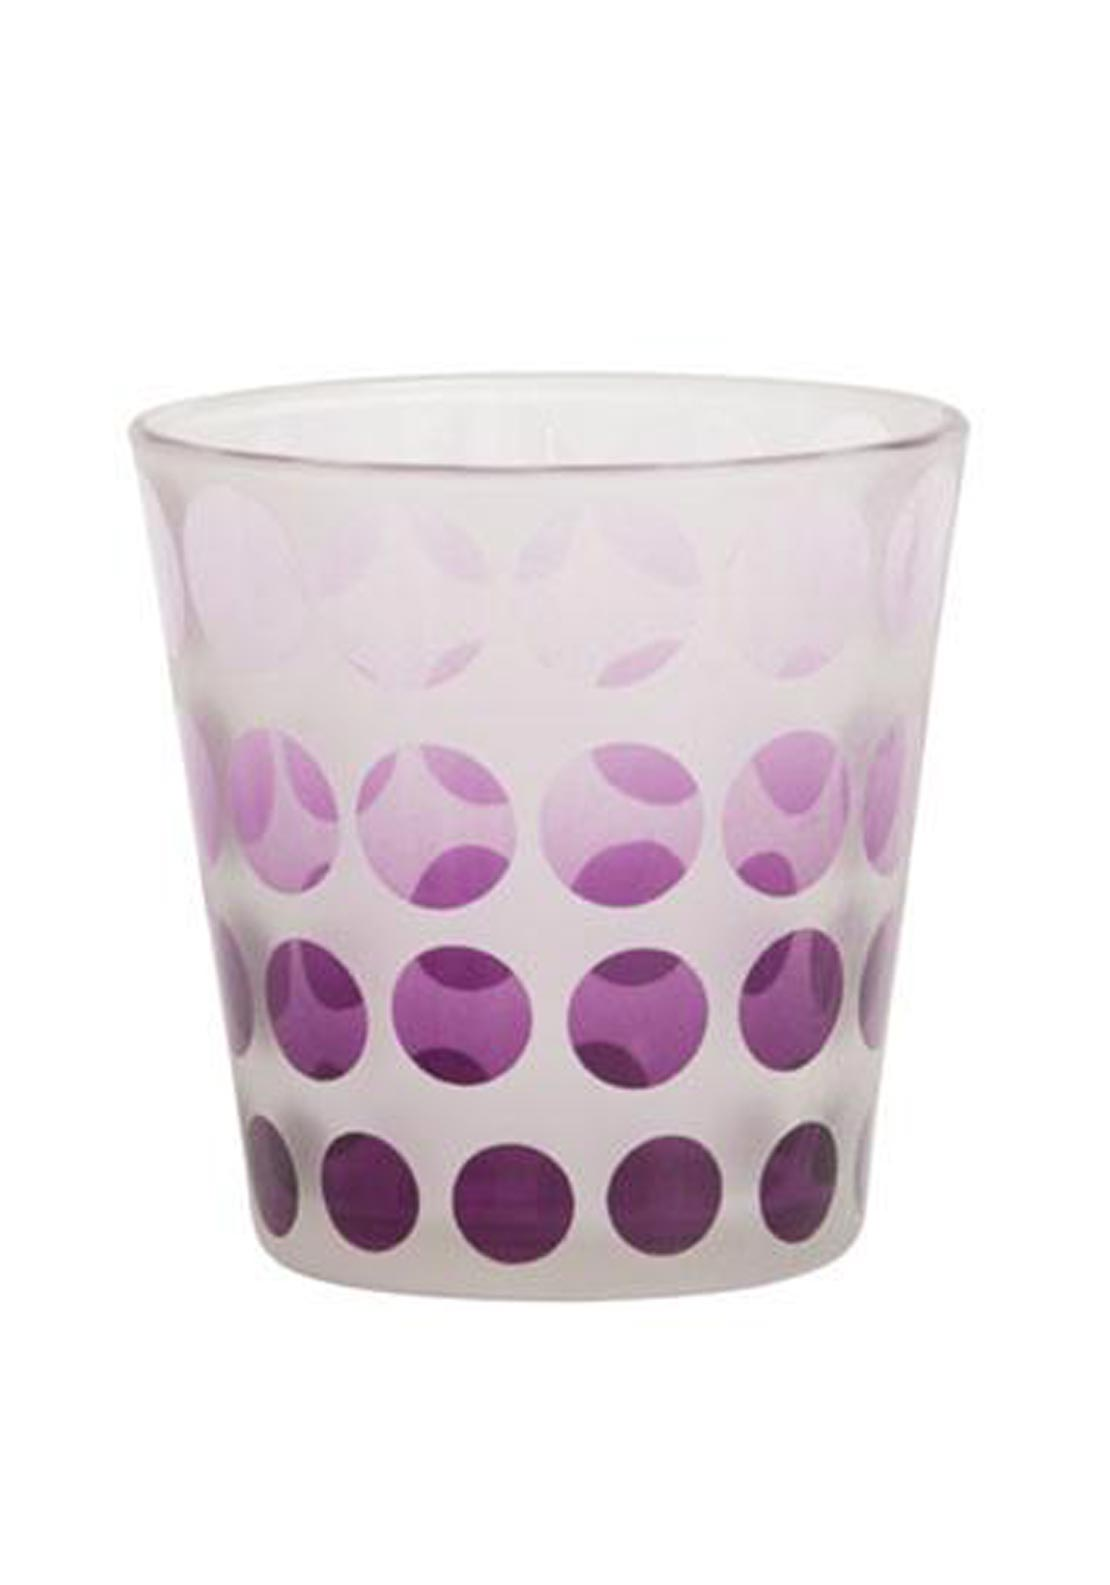 Yankee Candle Pure Essence Sampler Holder, Purple